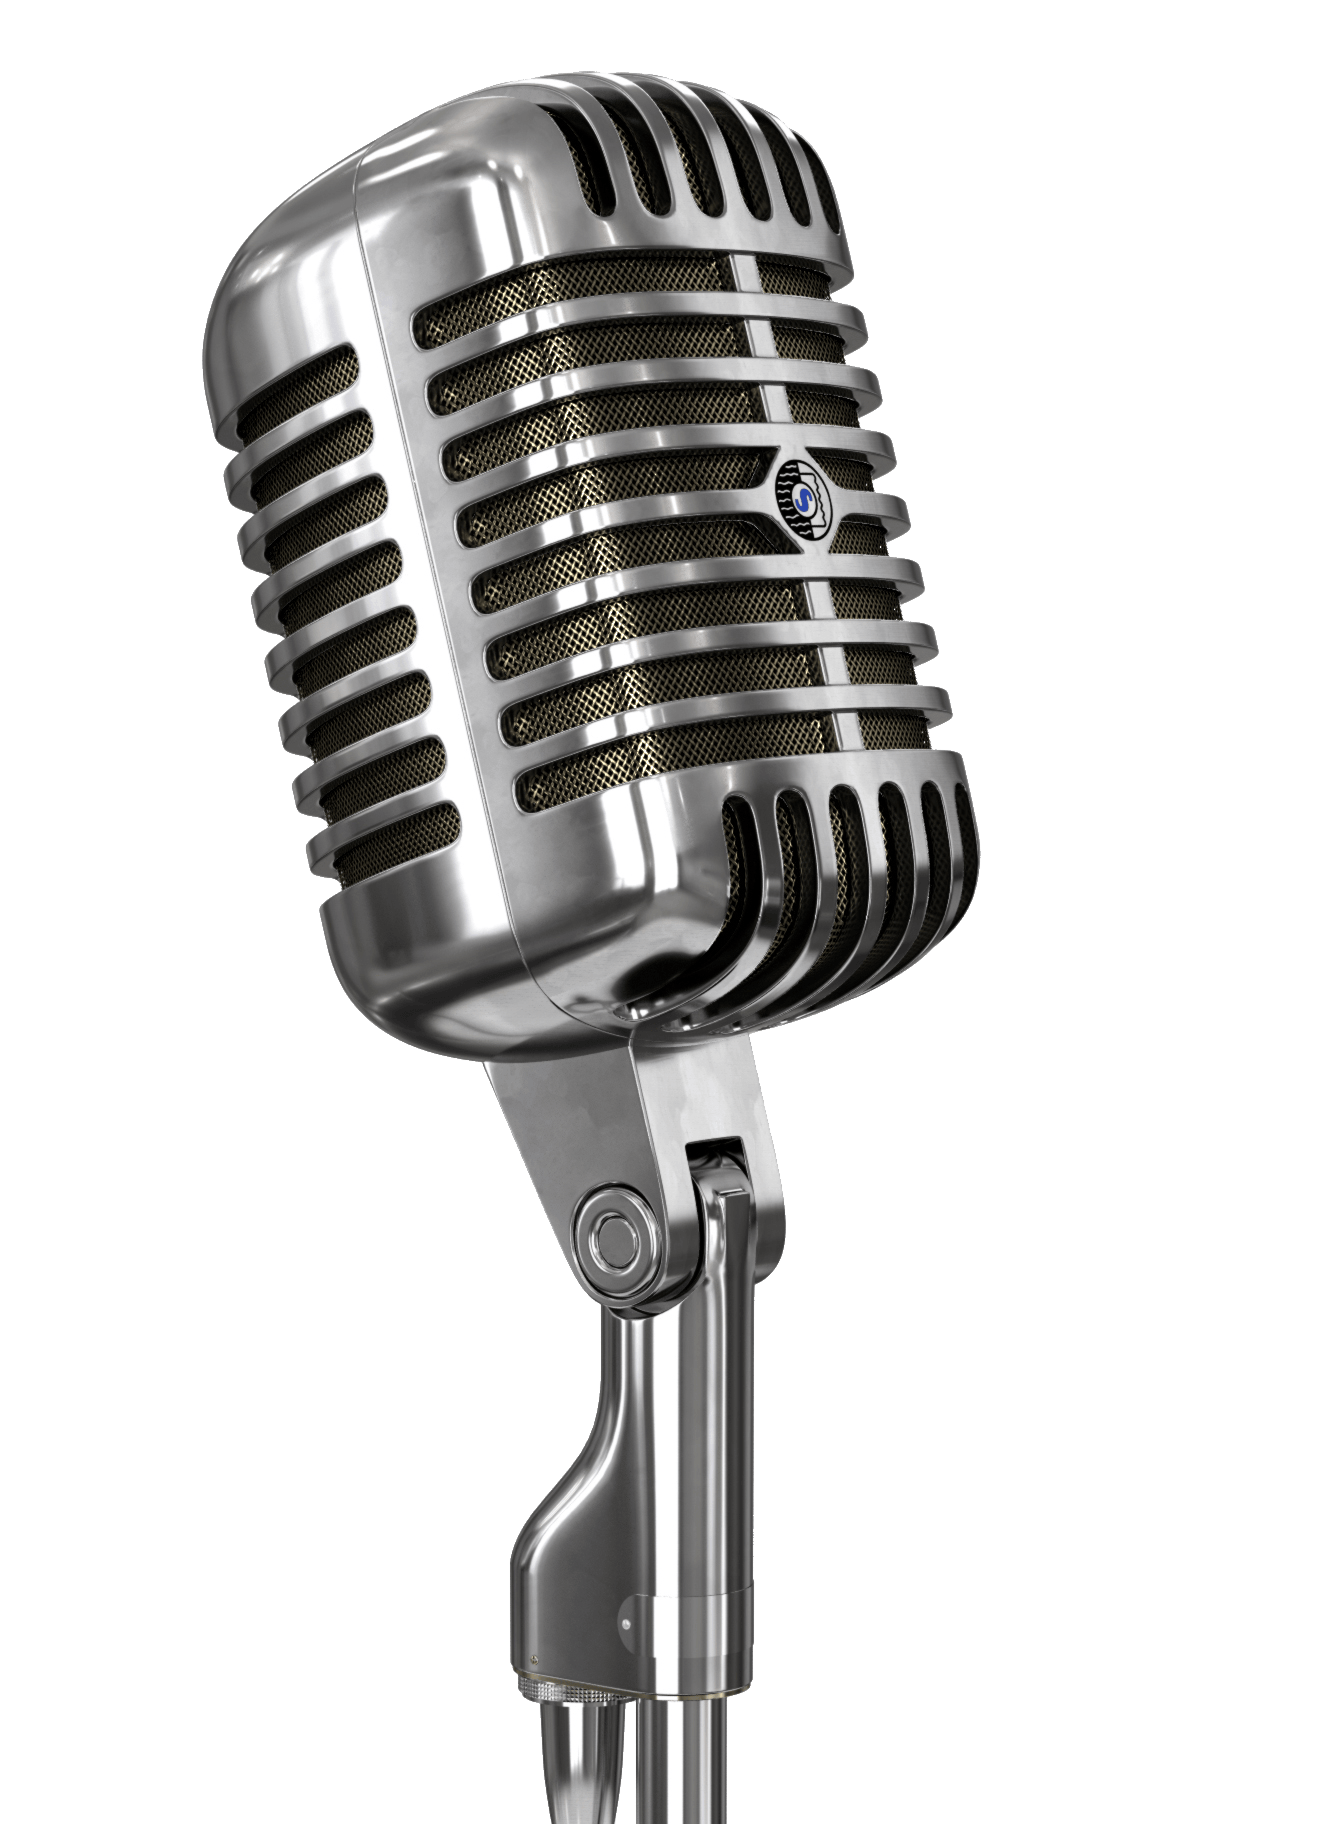 png transparent stock Image result for png microphone